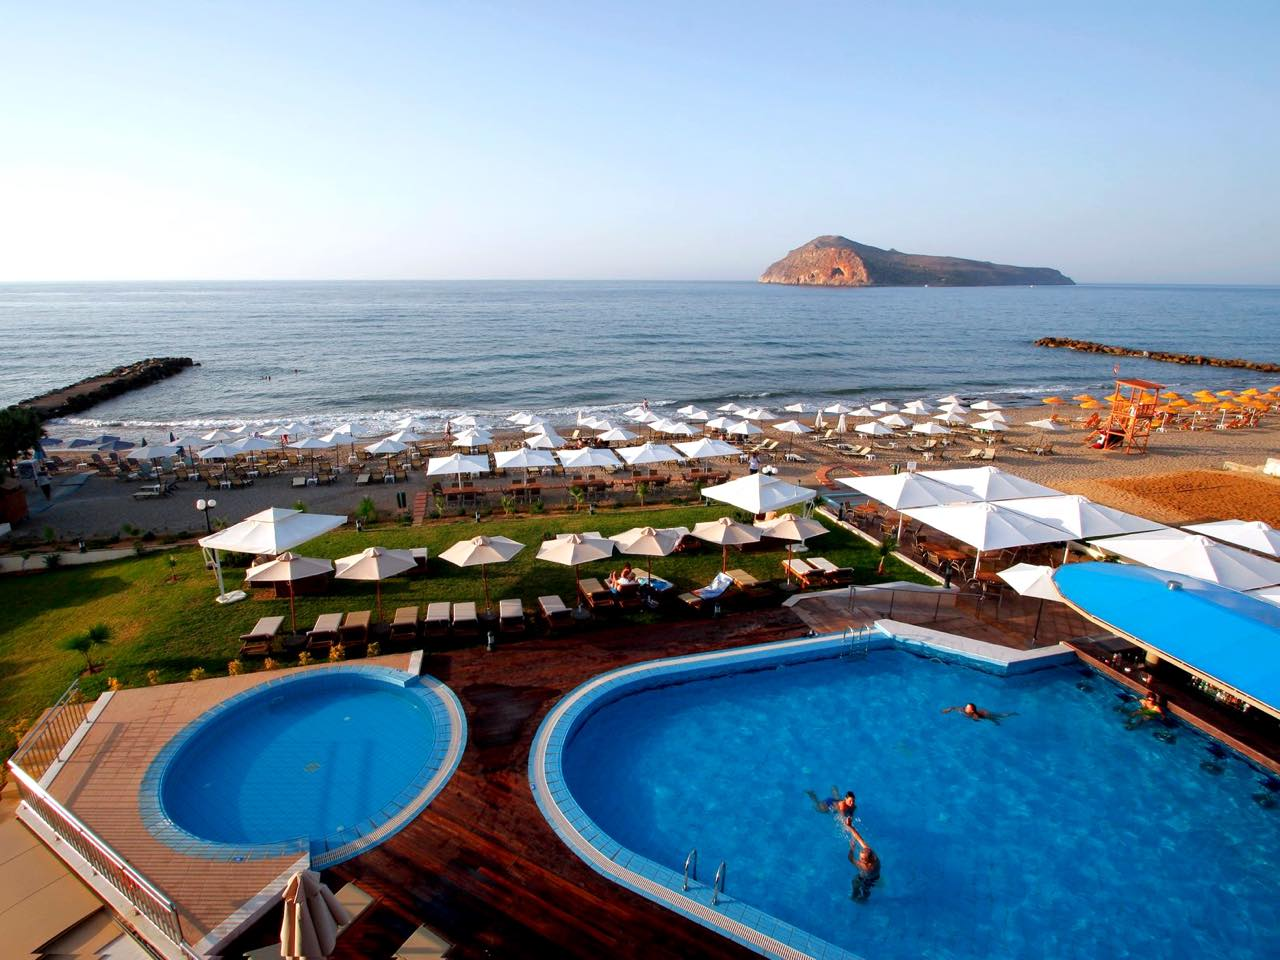 Thalassa Beach Resort at Agia Marina, Chania New Member Of Our Family